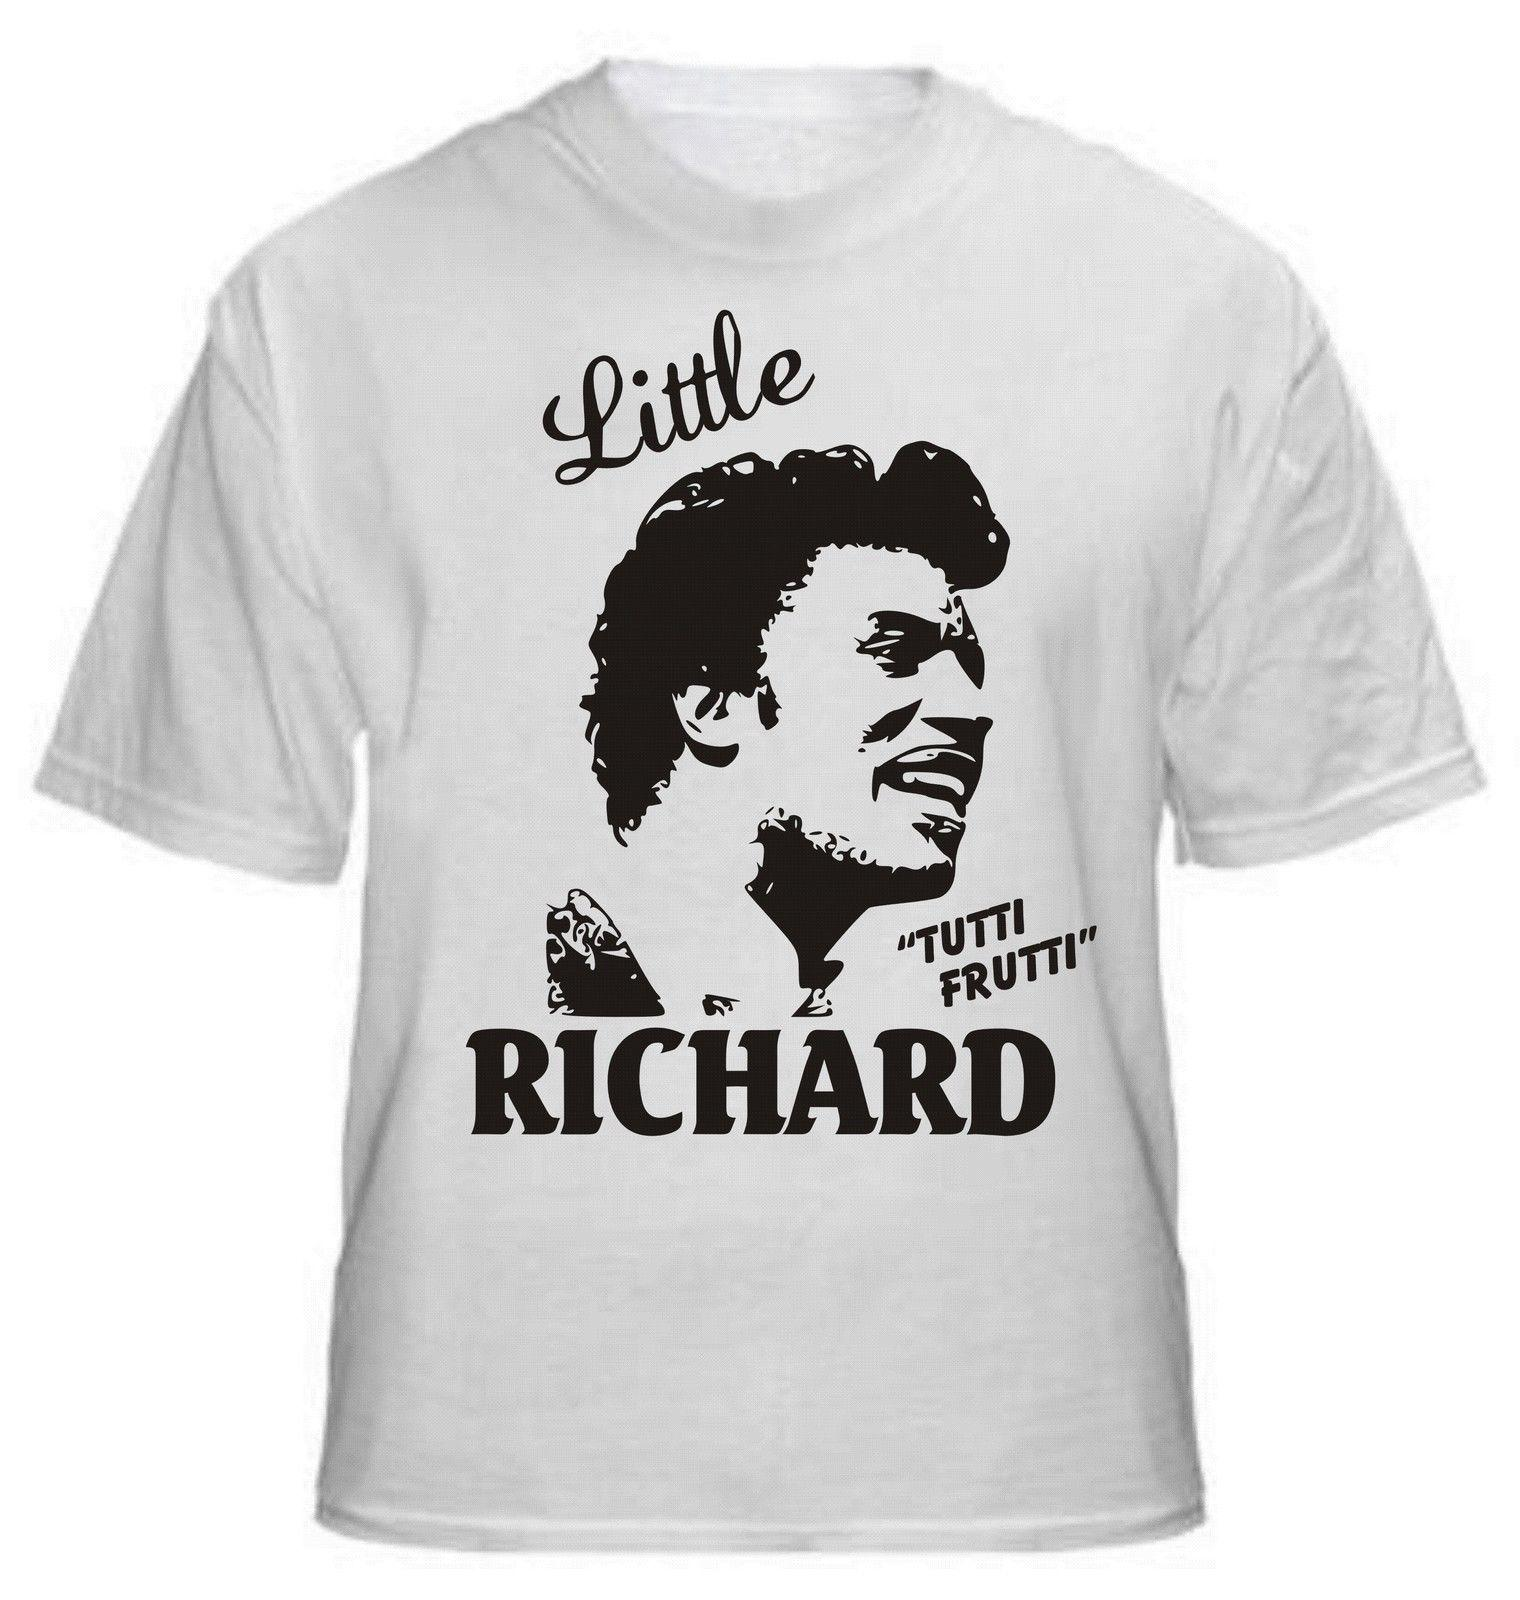 LITTLE RICHARD tutti frutti Camiseta, Rock 'n' ROLL LEGEND - Todas as Tallas jaqueta croata tshirt de couro